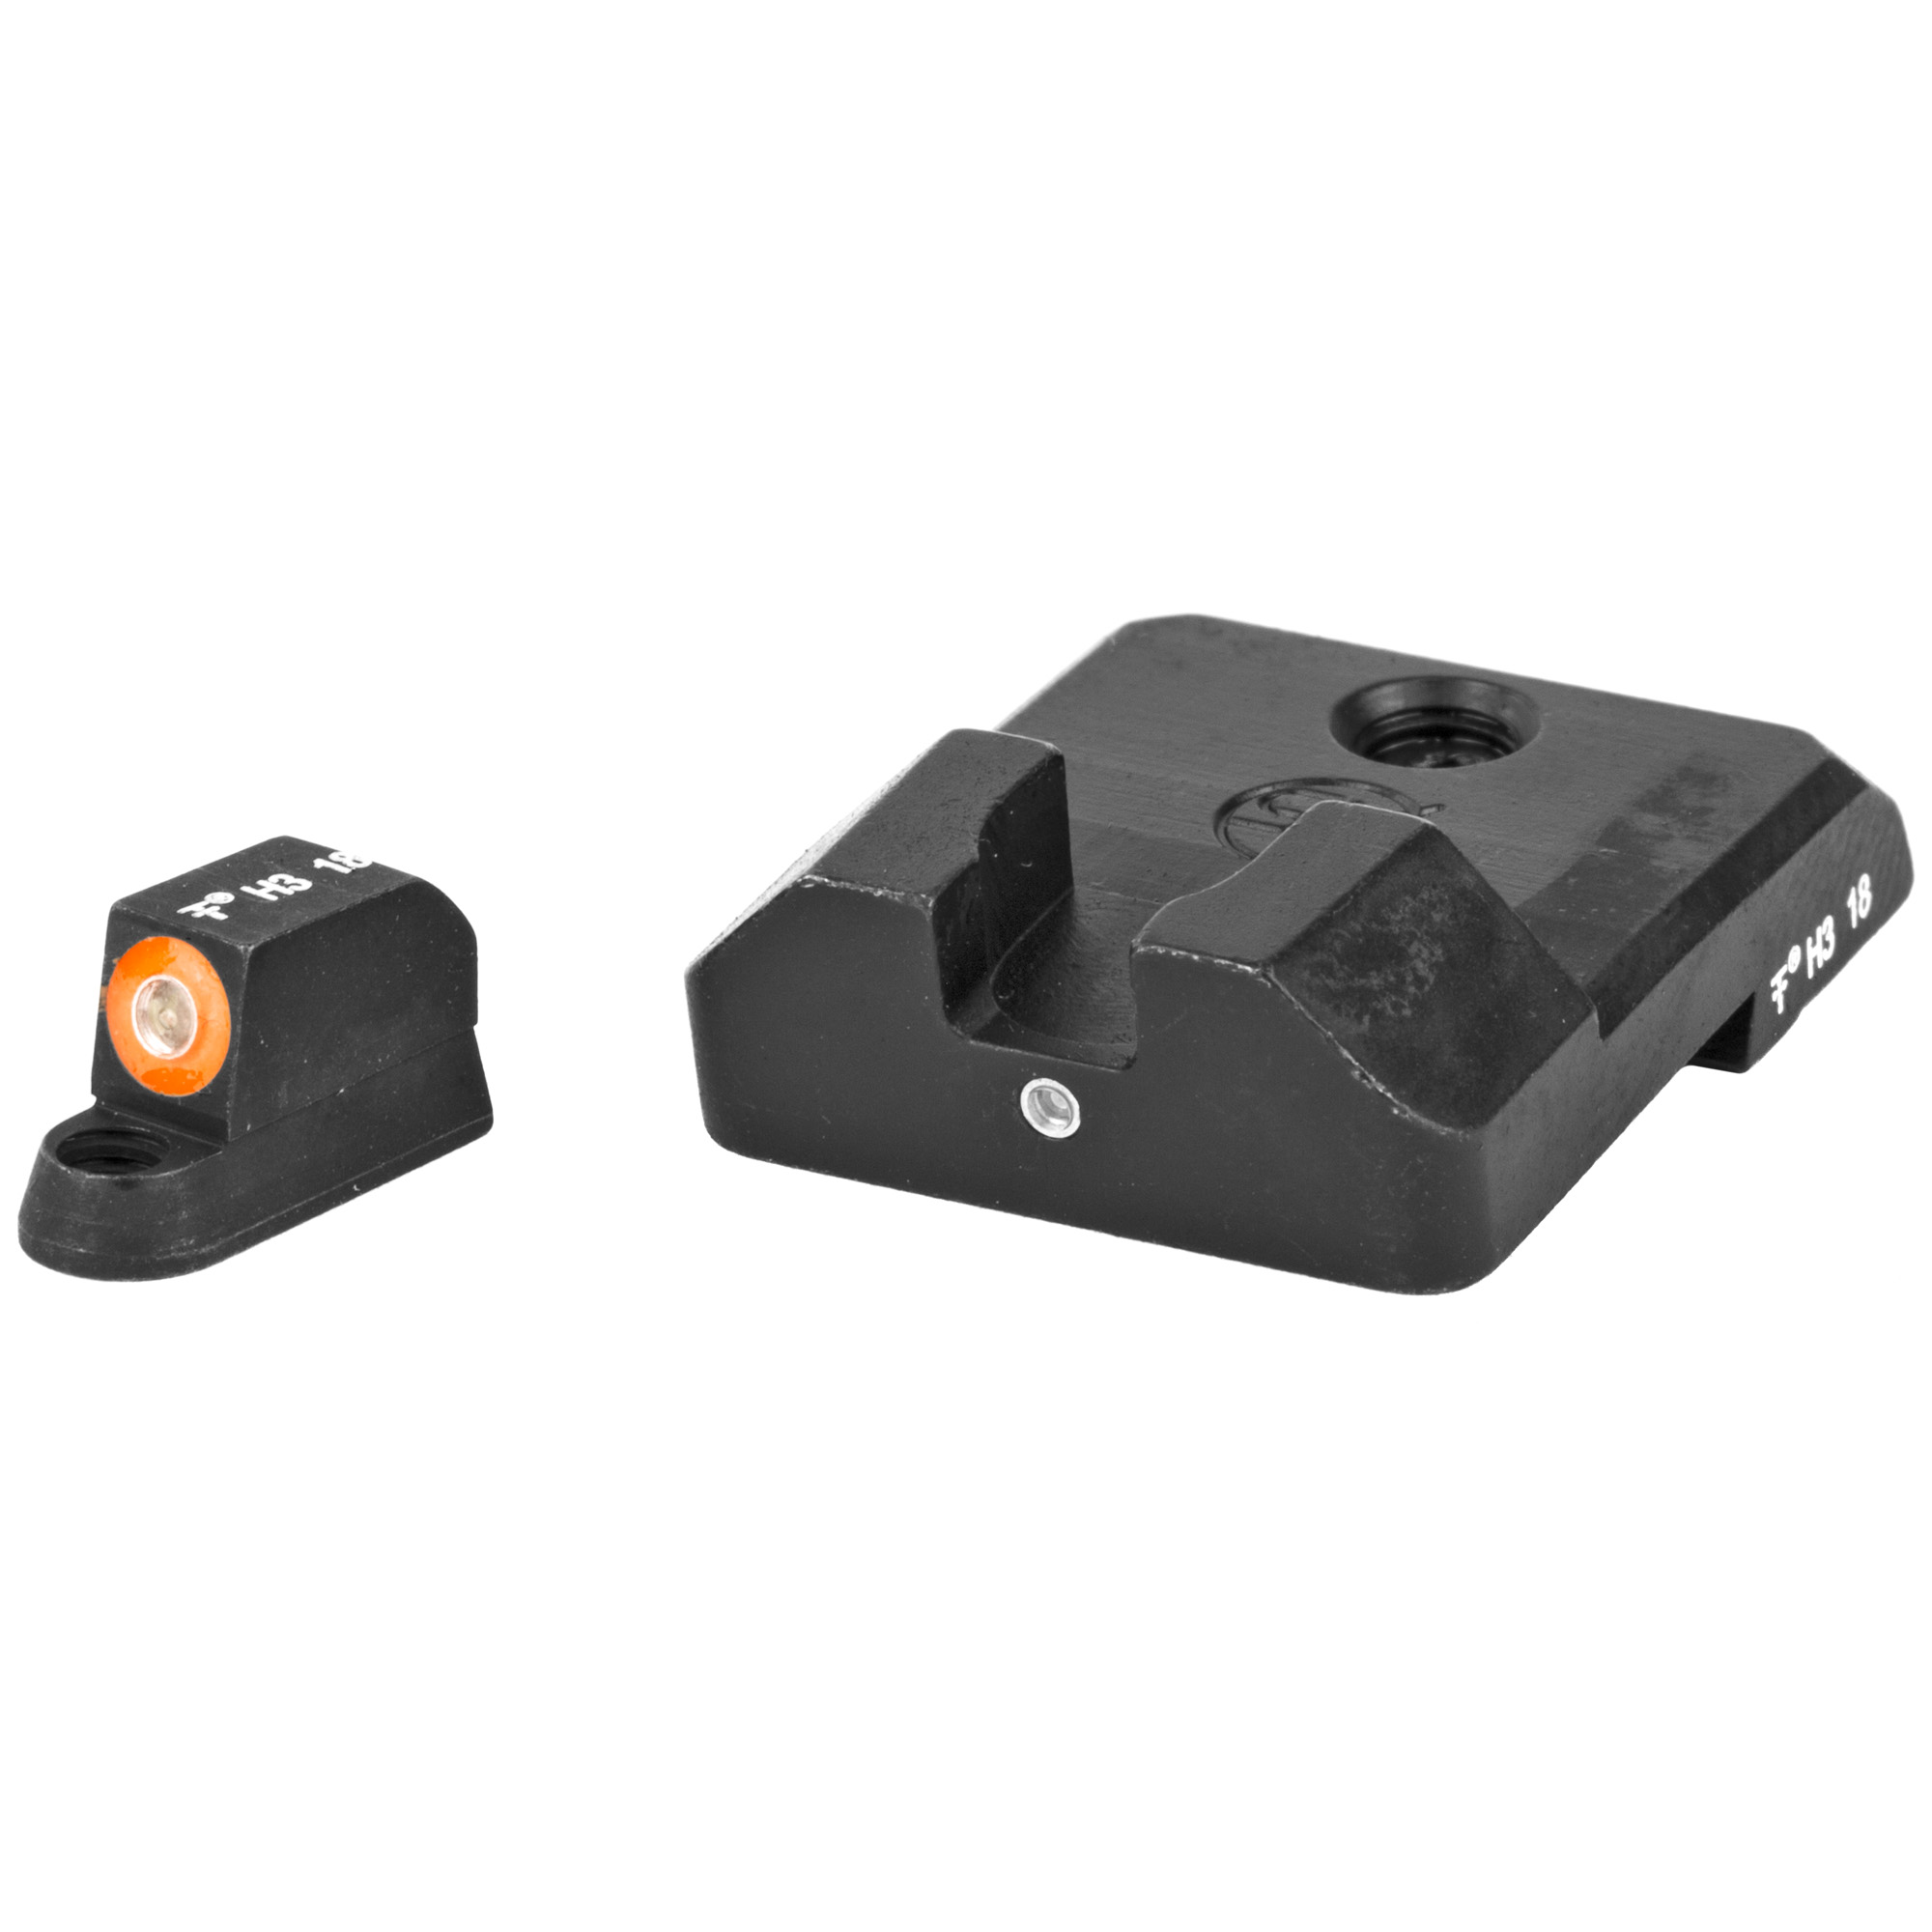 "Shoot better day and night. XS F8 night sights increase front sight focus by using a large"" high-contrast front sight for fast sight acquisition. The wide notch rear sight easily aligns with the front sight and increases front sight visibility. XS F8 night sights give you the best notch and post solution for fast sight acquisition in all lighting conditions."